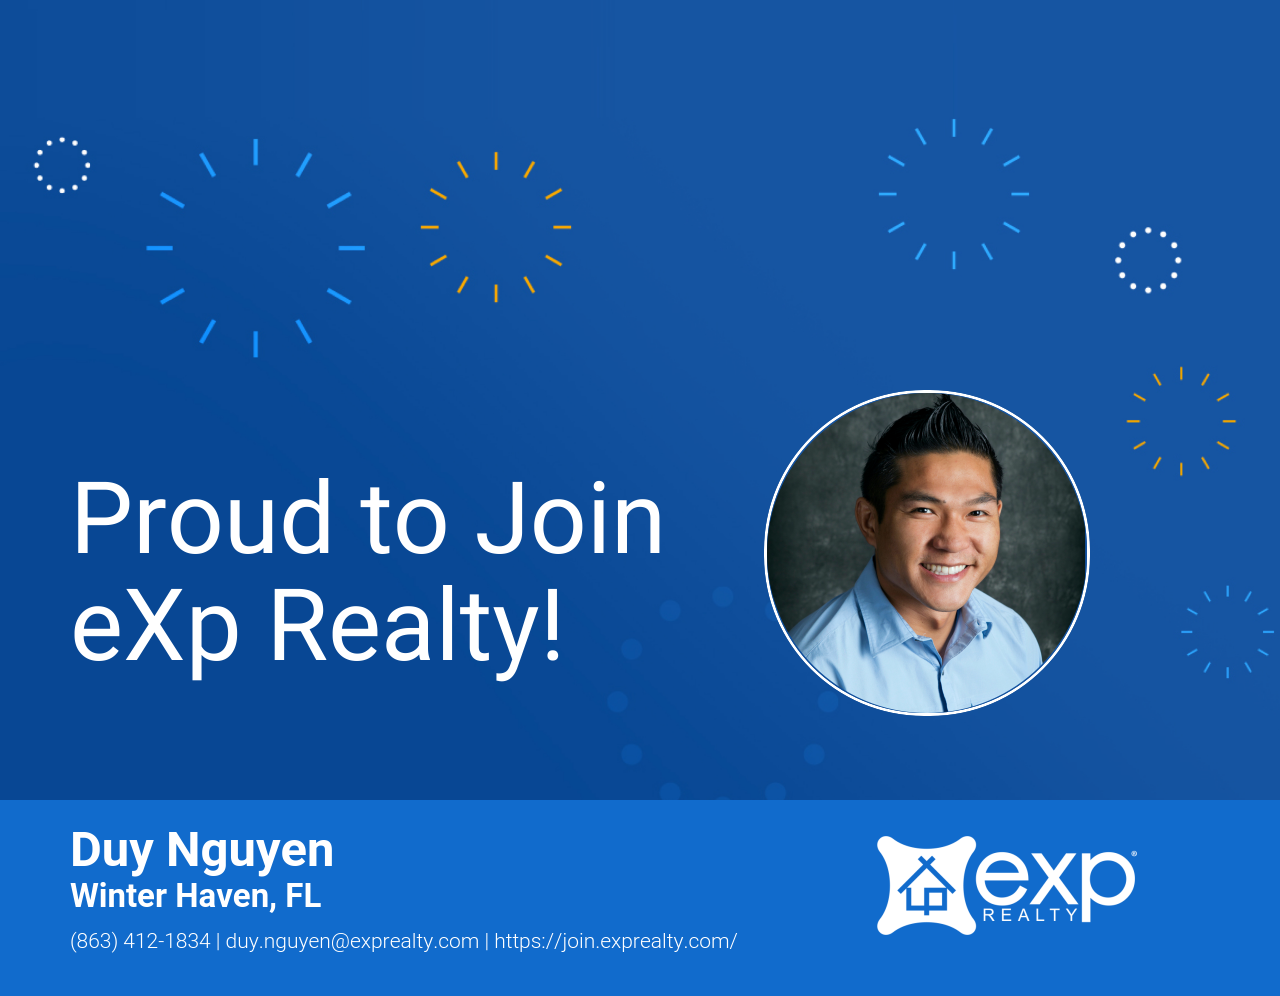 eXp Realty Welcomes Duy Nguyen!